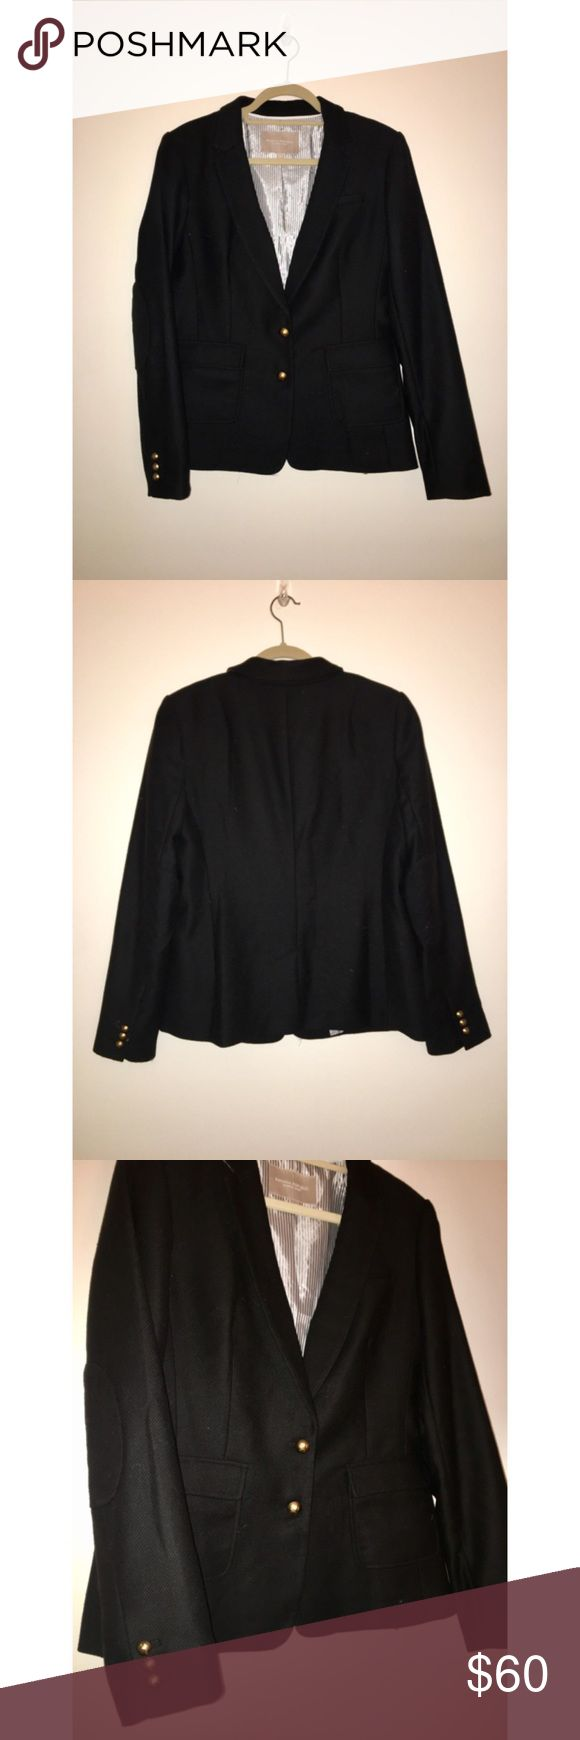 Black Hacking Jacket | Banana Republic Black wool blazer (Hacking Jacket style) from Banana Republic. Subtle elbow patches and gold buttons at front and on sleeves. Pockets. 59% wool, 36% polyester, 5% other fibers. EUC/ like new. Banana Republic Jackets & Coats Blazers